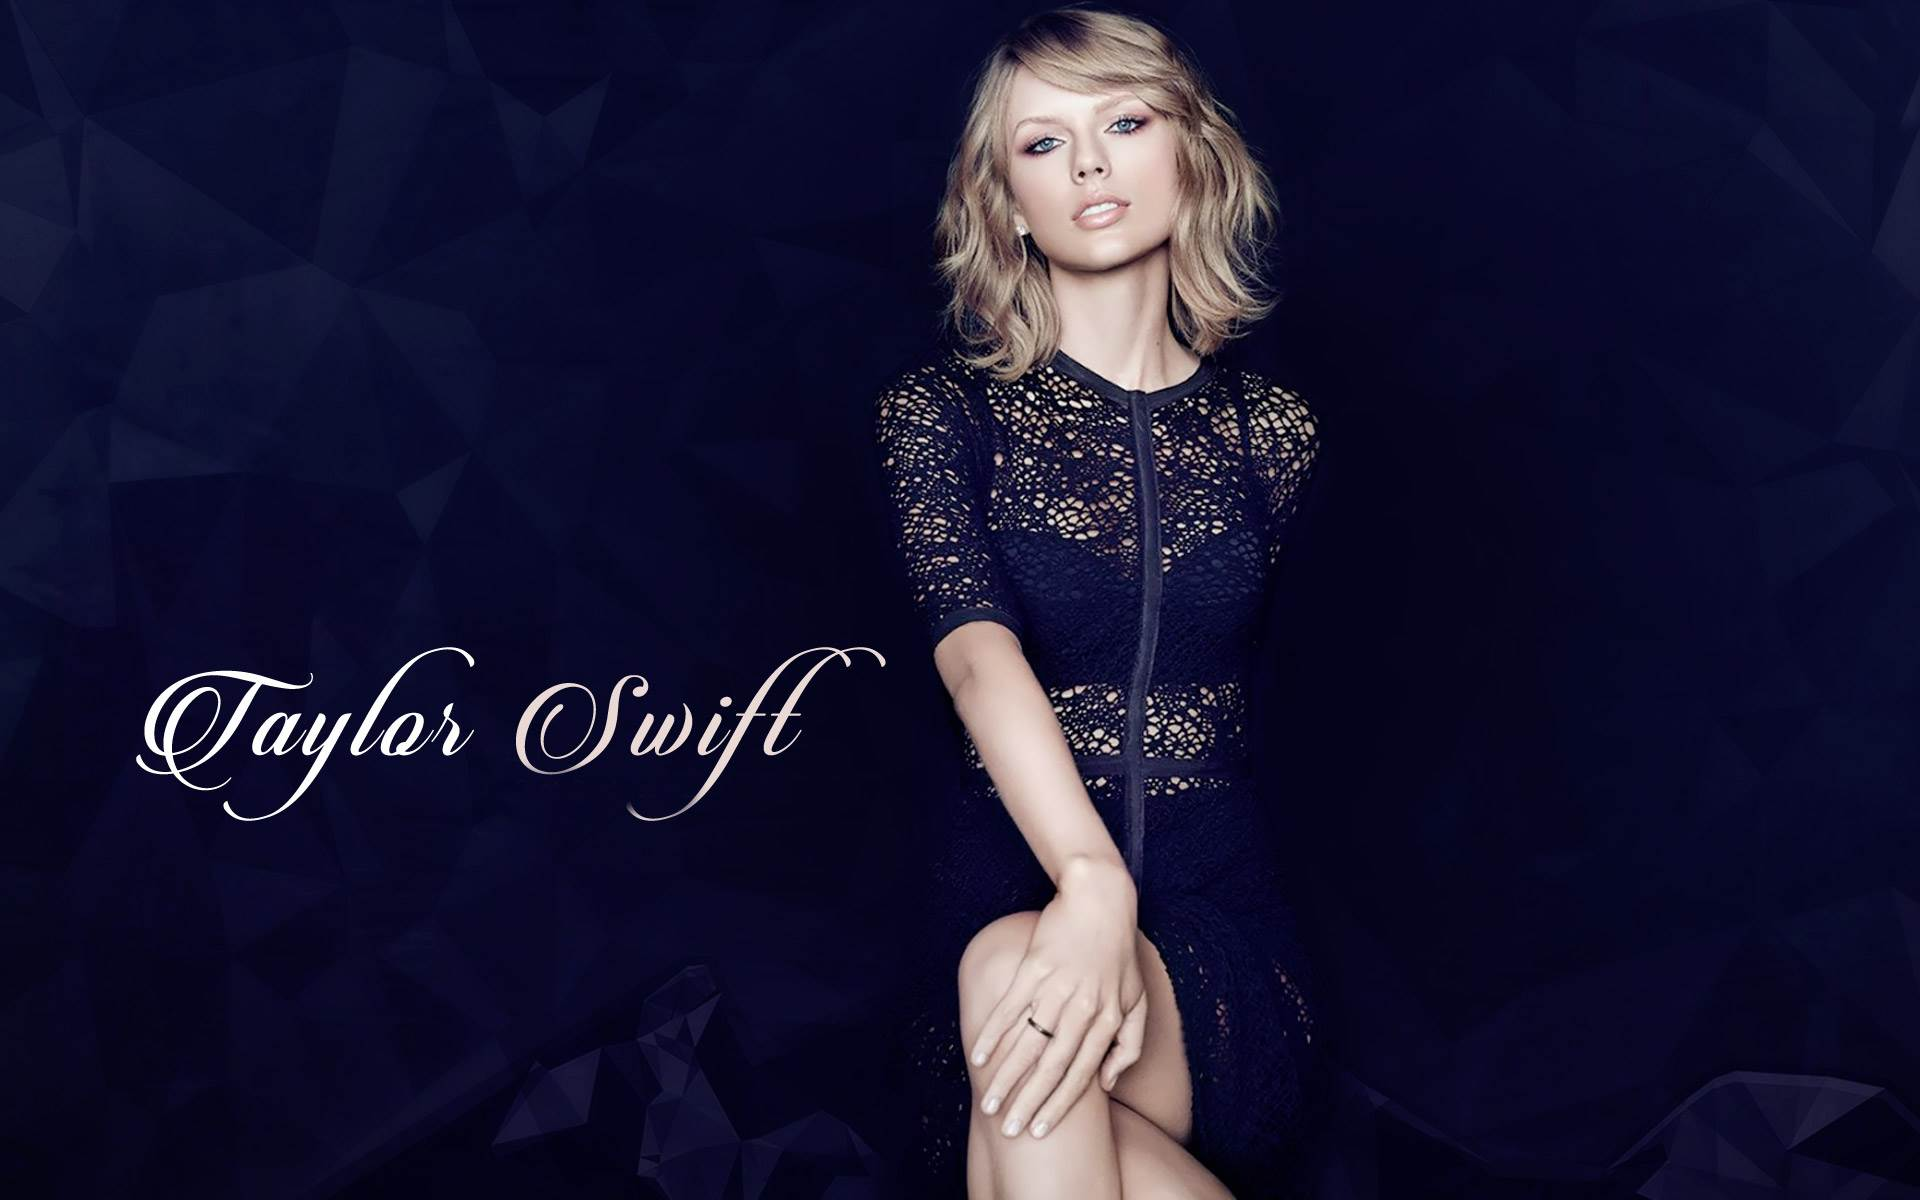 Iphone wallpaper tumblr taylor swift - Top Taylor Swift Desktop Wallpapers Iphone Wallpapers More For